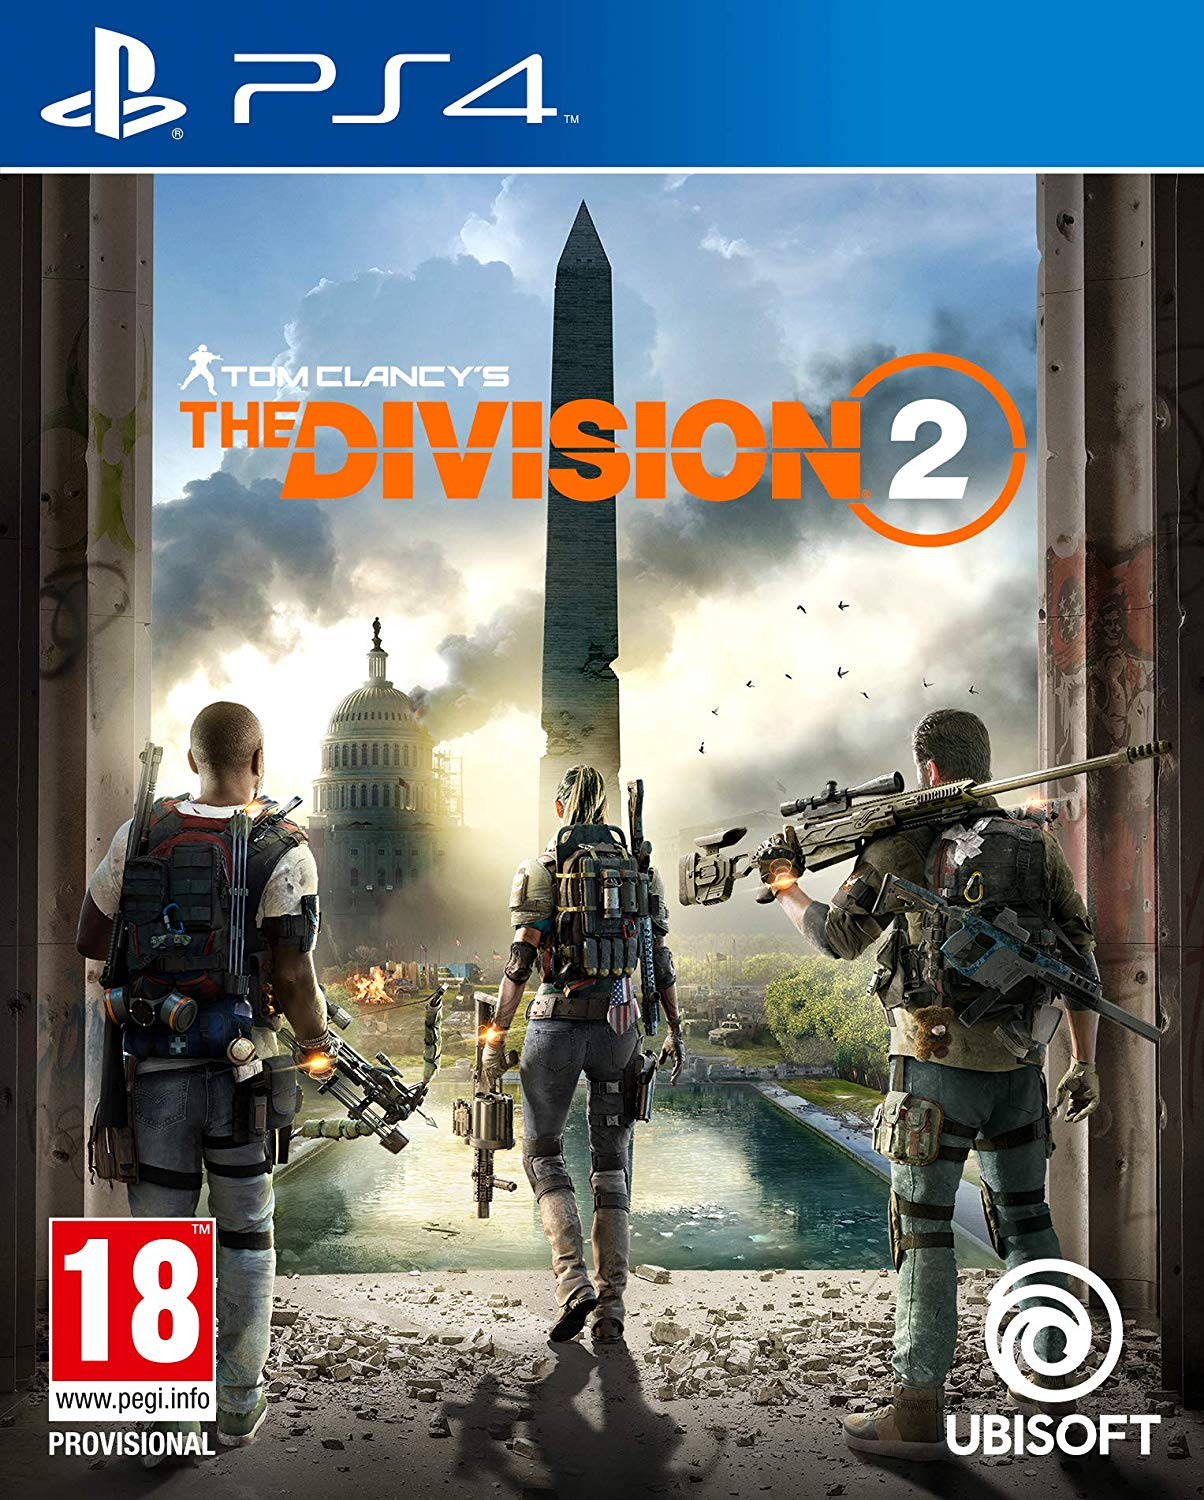 The Division 2 is back as new UK number one – Games charts 13 April